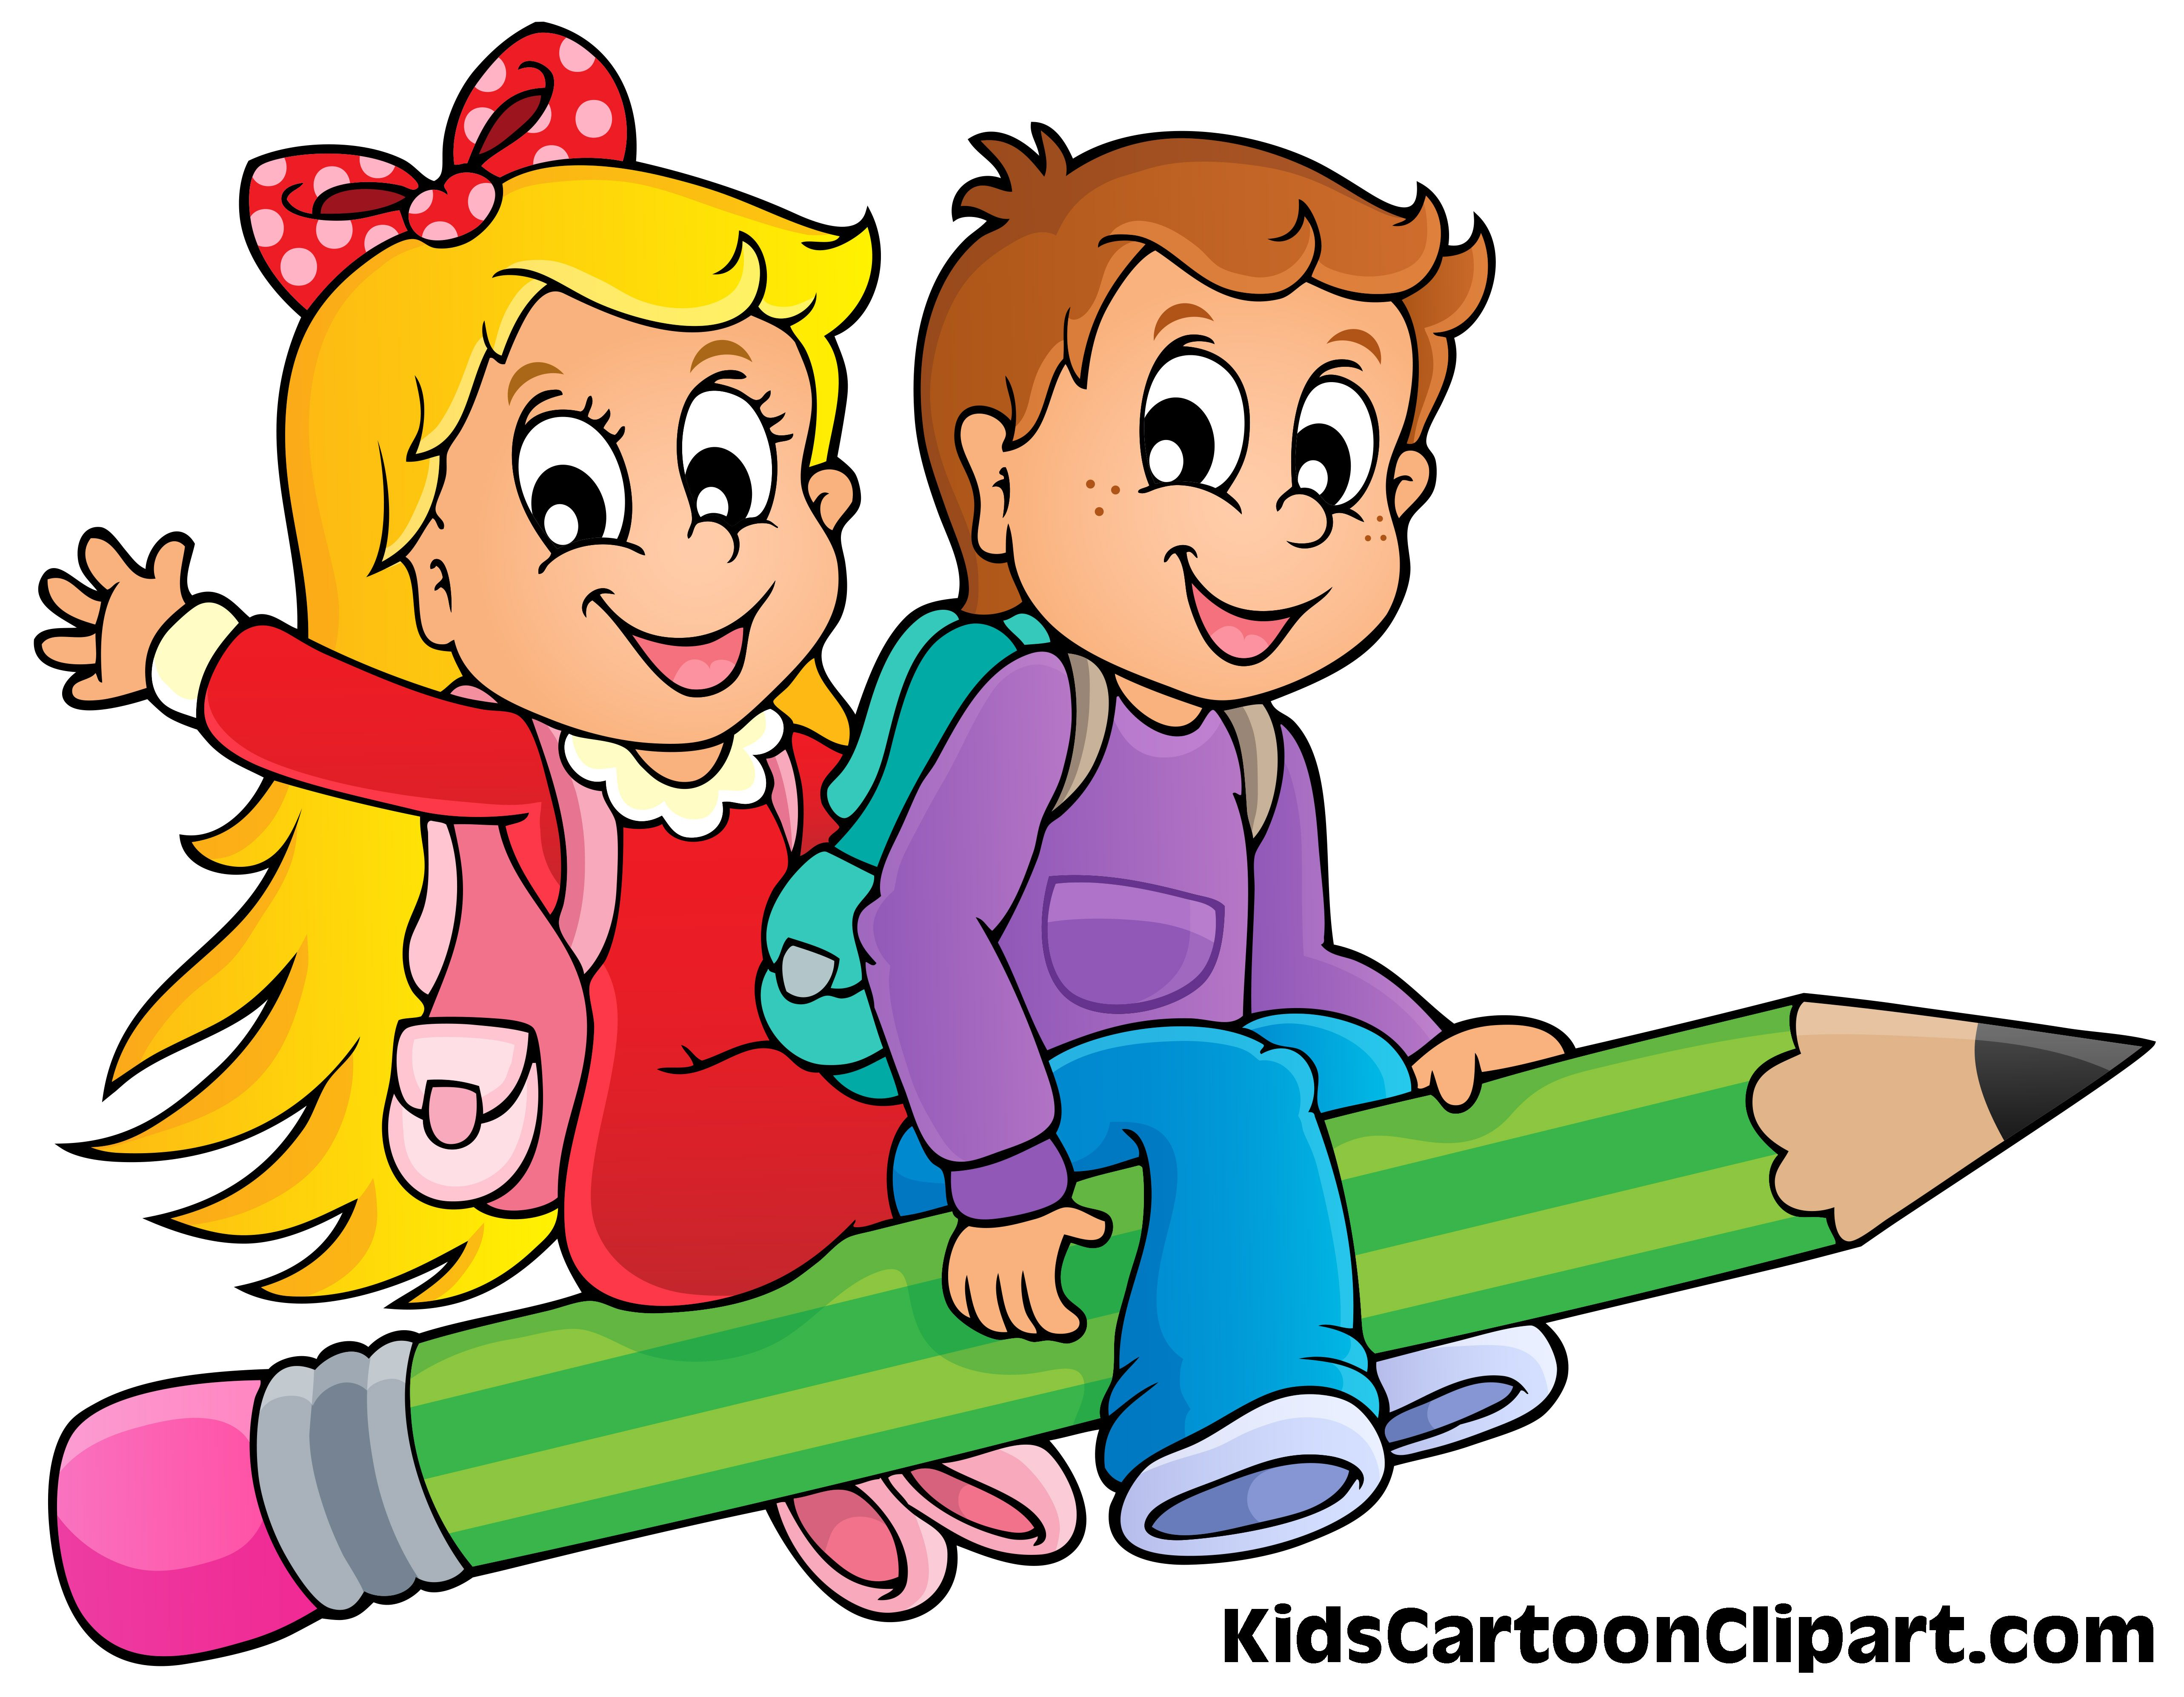 Boy and girl clipart free svg library download A Cute Boy and Girl Cartoon Flying on Pencil with School Bag Clipart ... svg library download